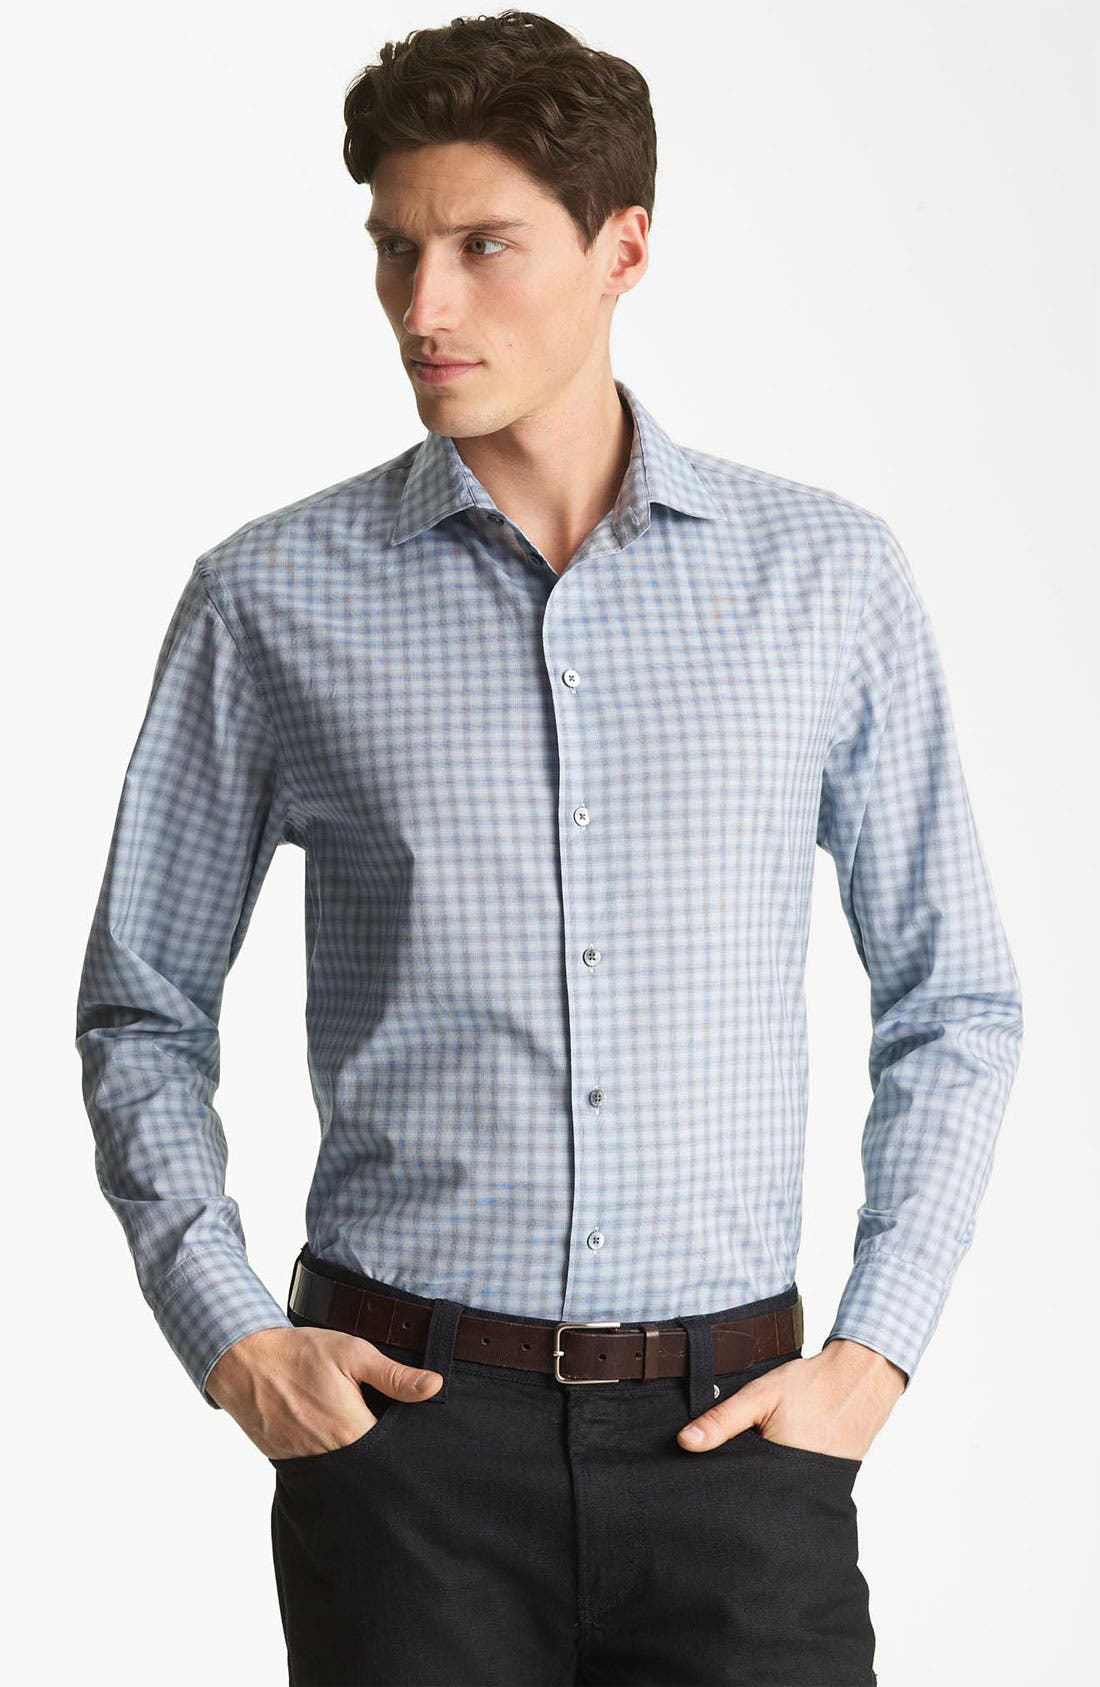 Alternate Image 1 Selected - Armani Collezioni Plaid Woven Shirt